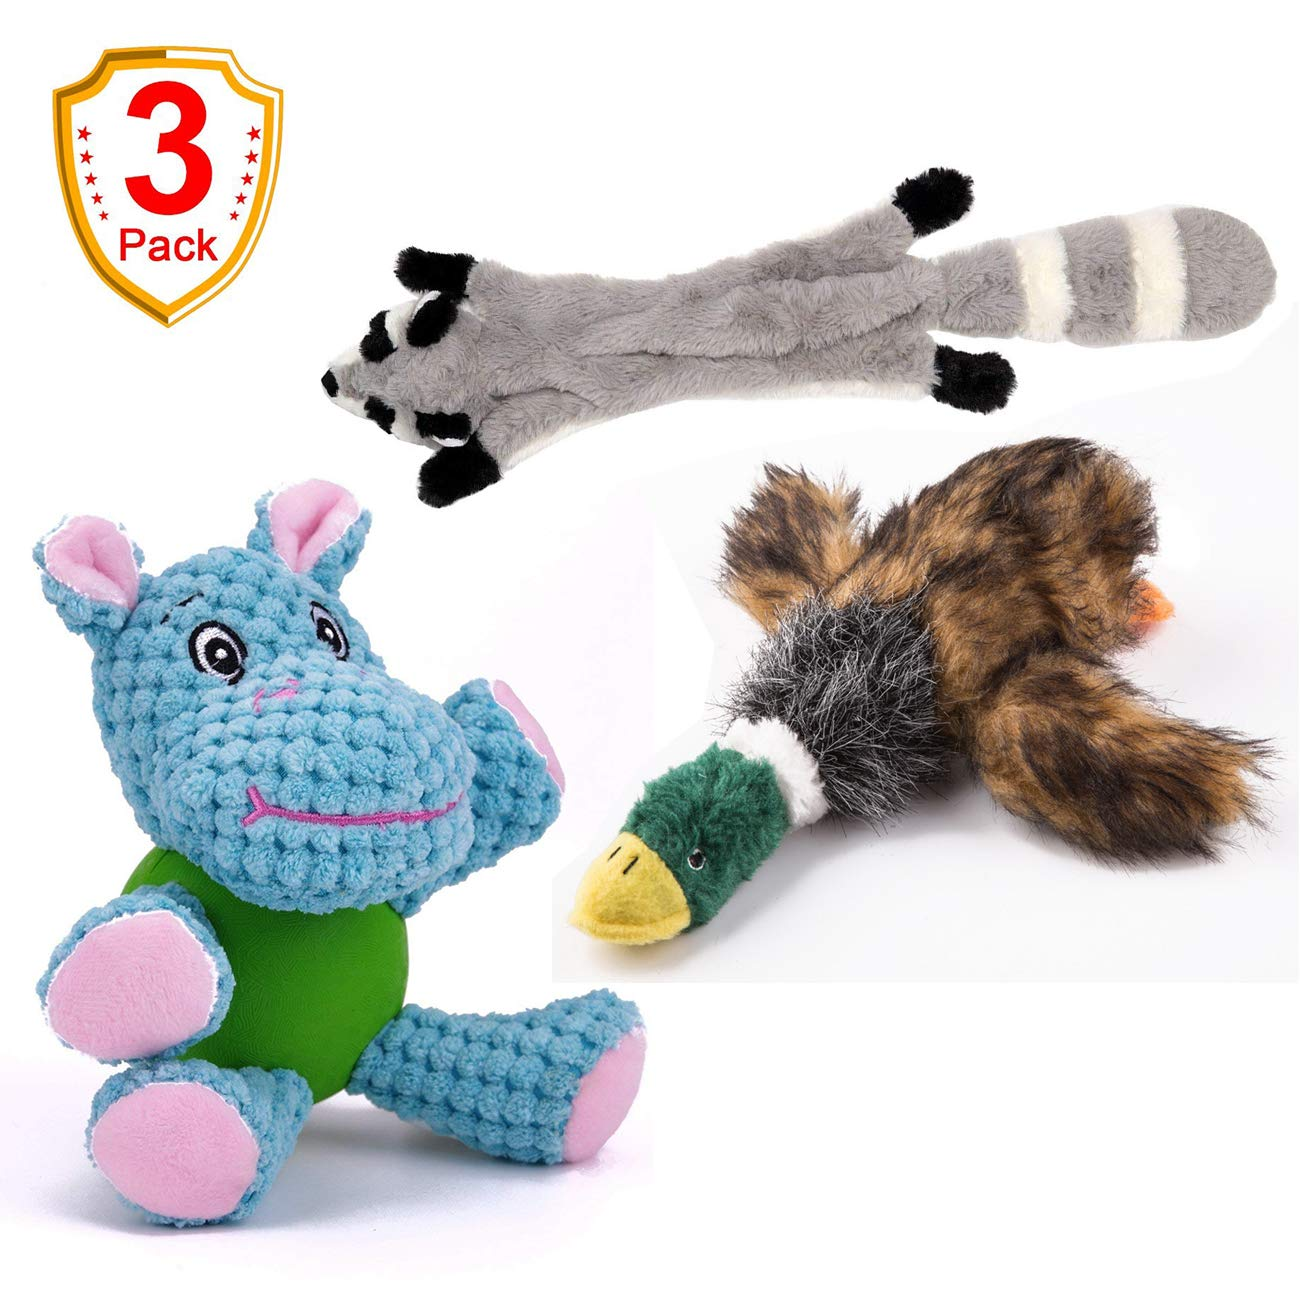 3 Pack Dog Toys EETOYS 3 Pack Durable Plush Dog Toys with Chew Guard Rubber Ball for Small Dogs Interaction Training(Hippo No Stuffing Squeaky Plush Dog Toy(Raccoon) Chew Toy with Cartoon Plush Squeaking Style(Duck)